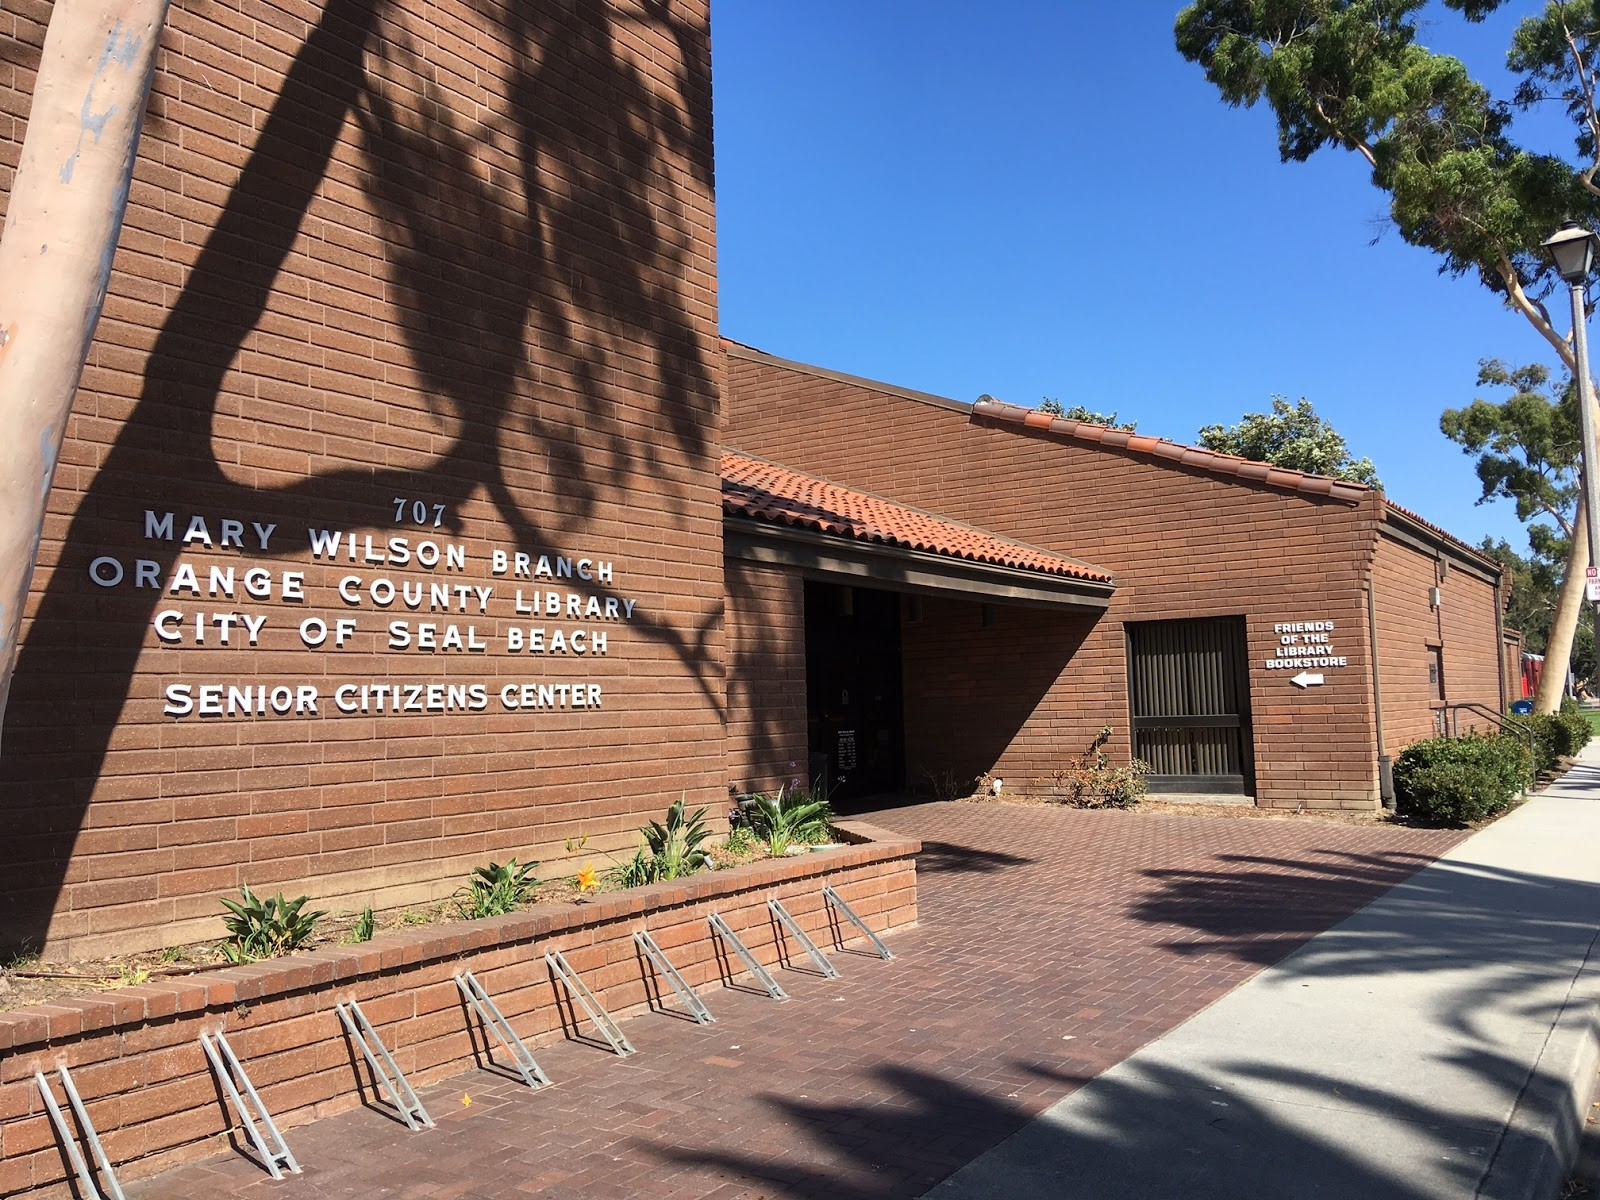 OC Public Libraries Blog: Who is Mary Wilson and why is a branch of